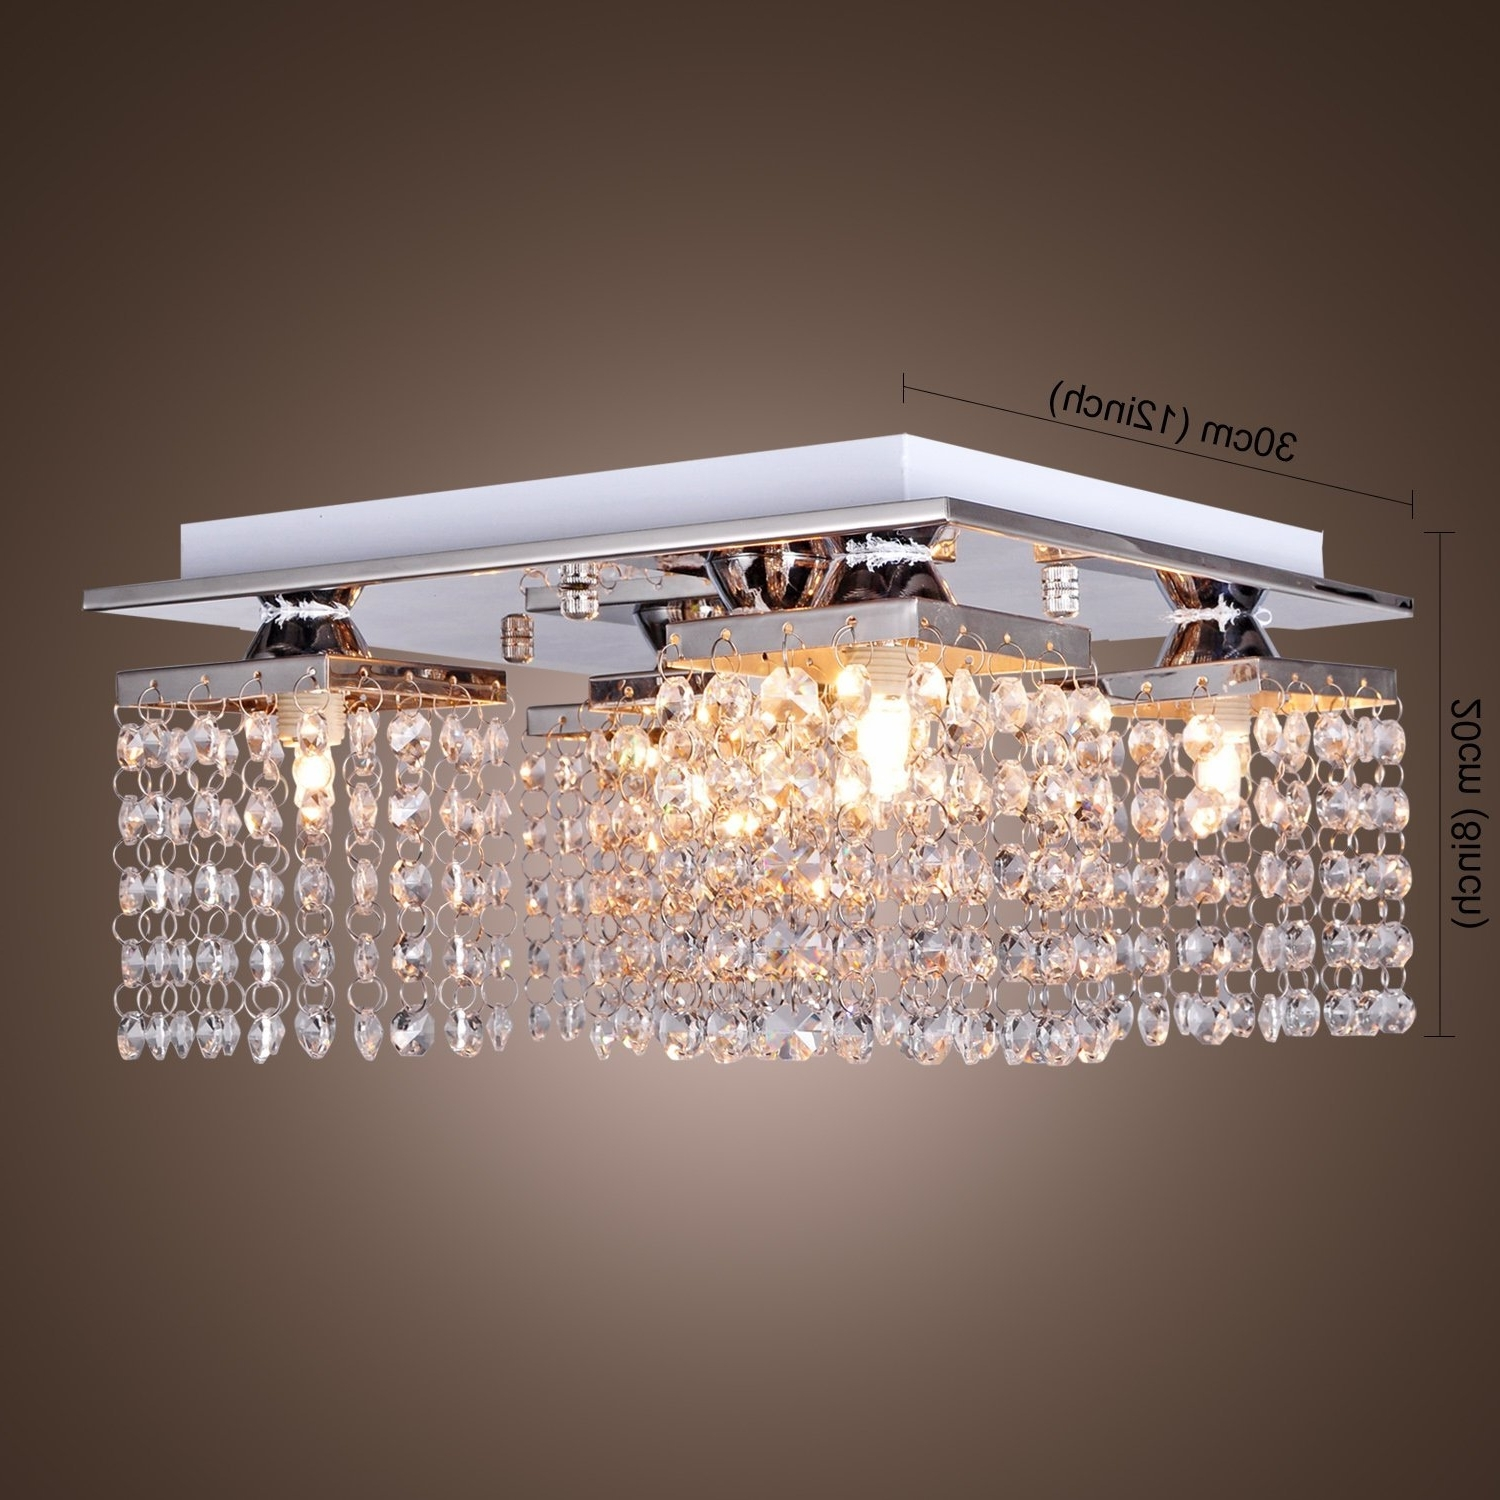 Fashionable Chandeliers For Low Ceilings Regarding Ceiling: Lighting For Low Ceilings (View 5 of 20)